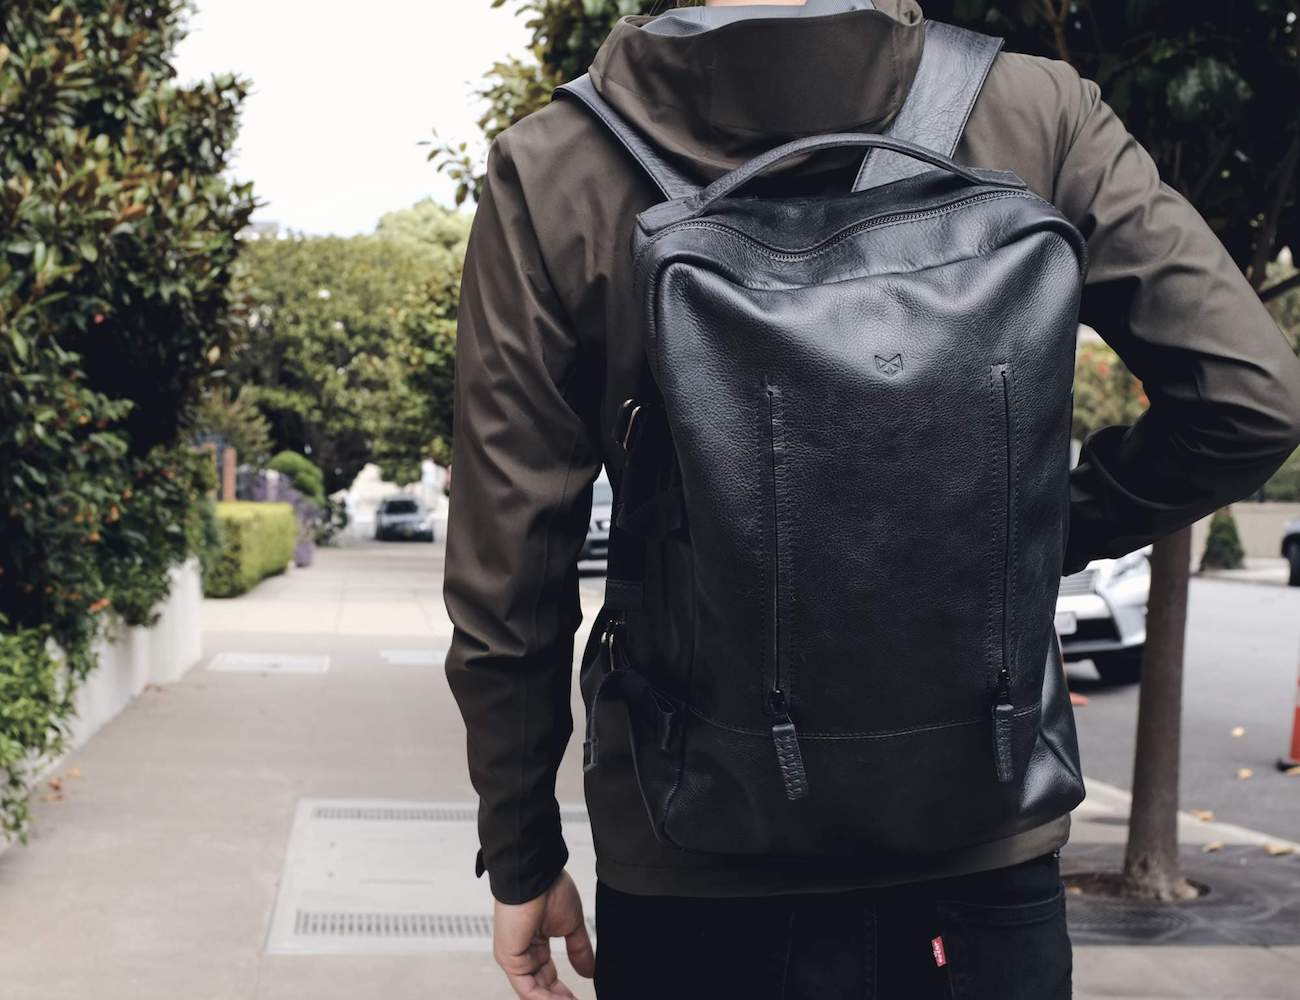 Capra Leather Tamarao Handmade Leather Backpack